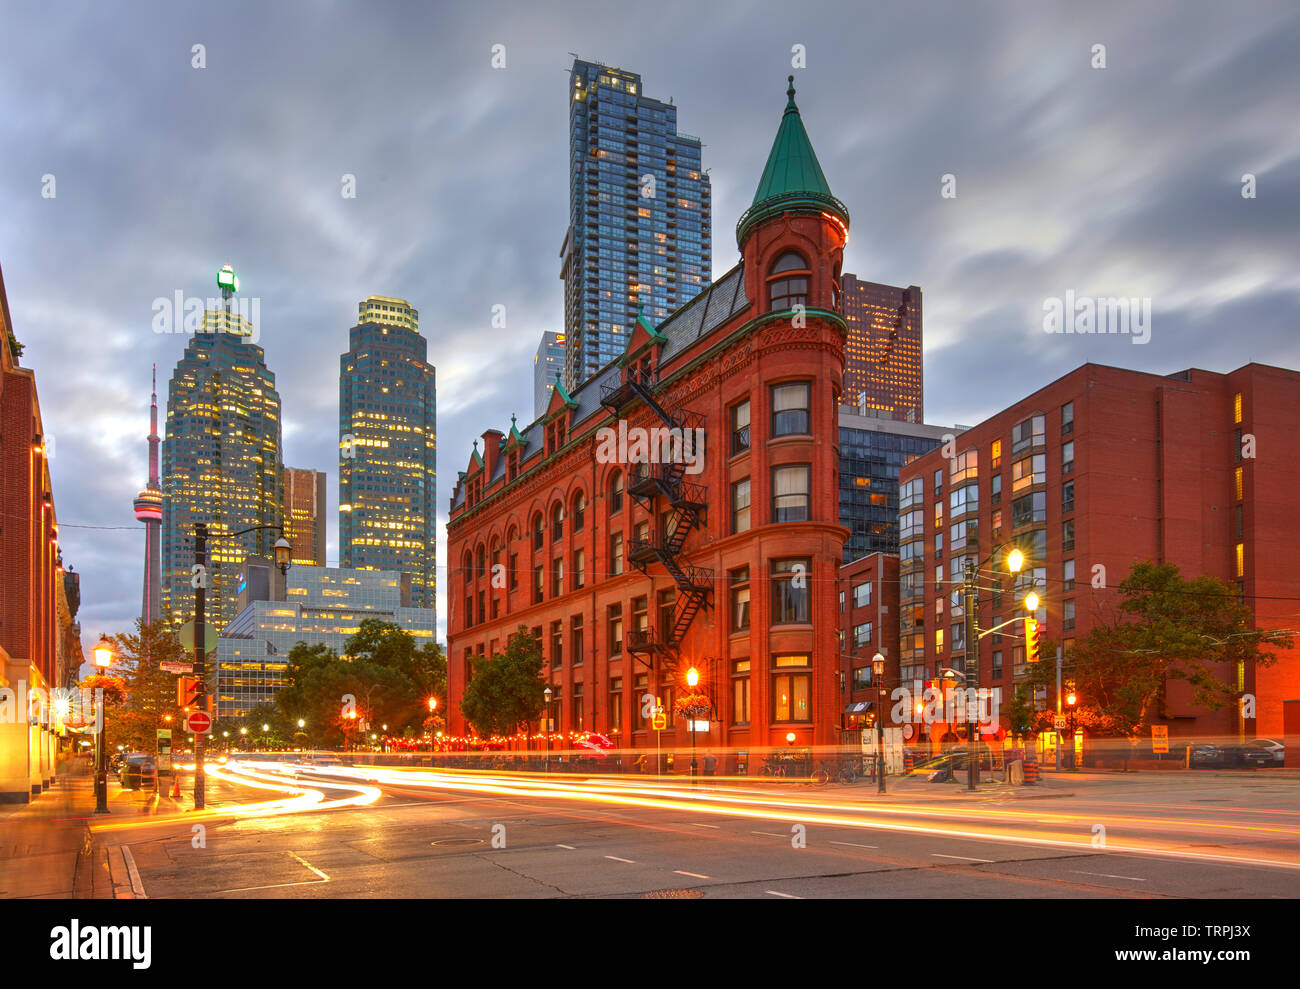 Gooderham Building, also known as the Flatiron Building, during the blue hour with light trails, Toronto, Canada - Stock Image